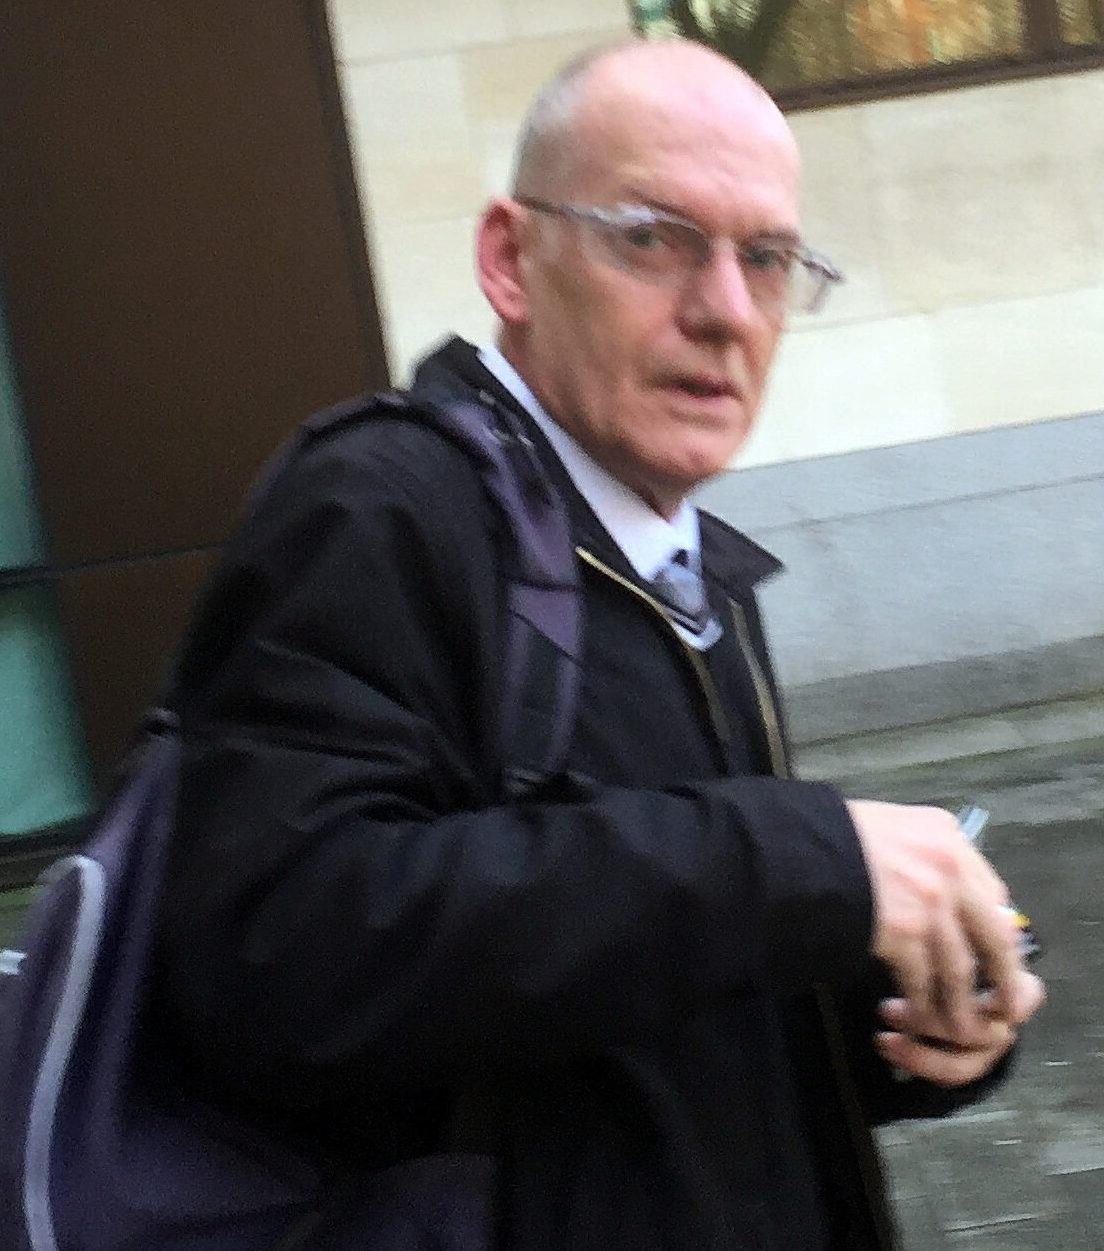 Pervert took up-skirt shots on a day out with his daughter